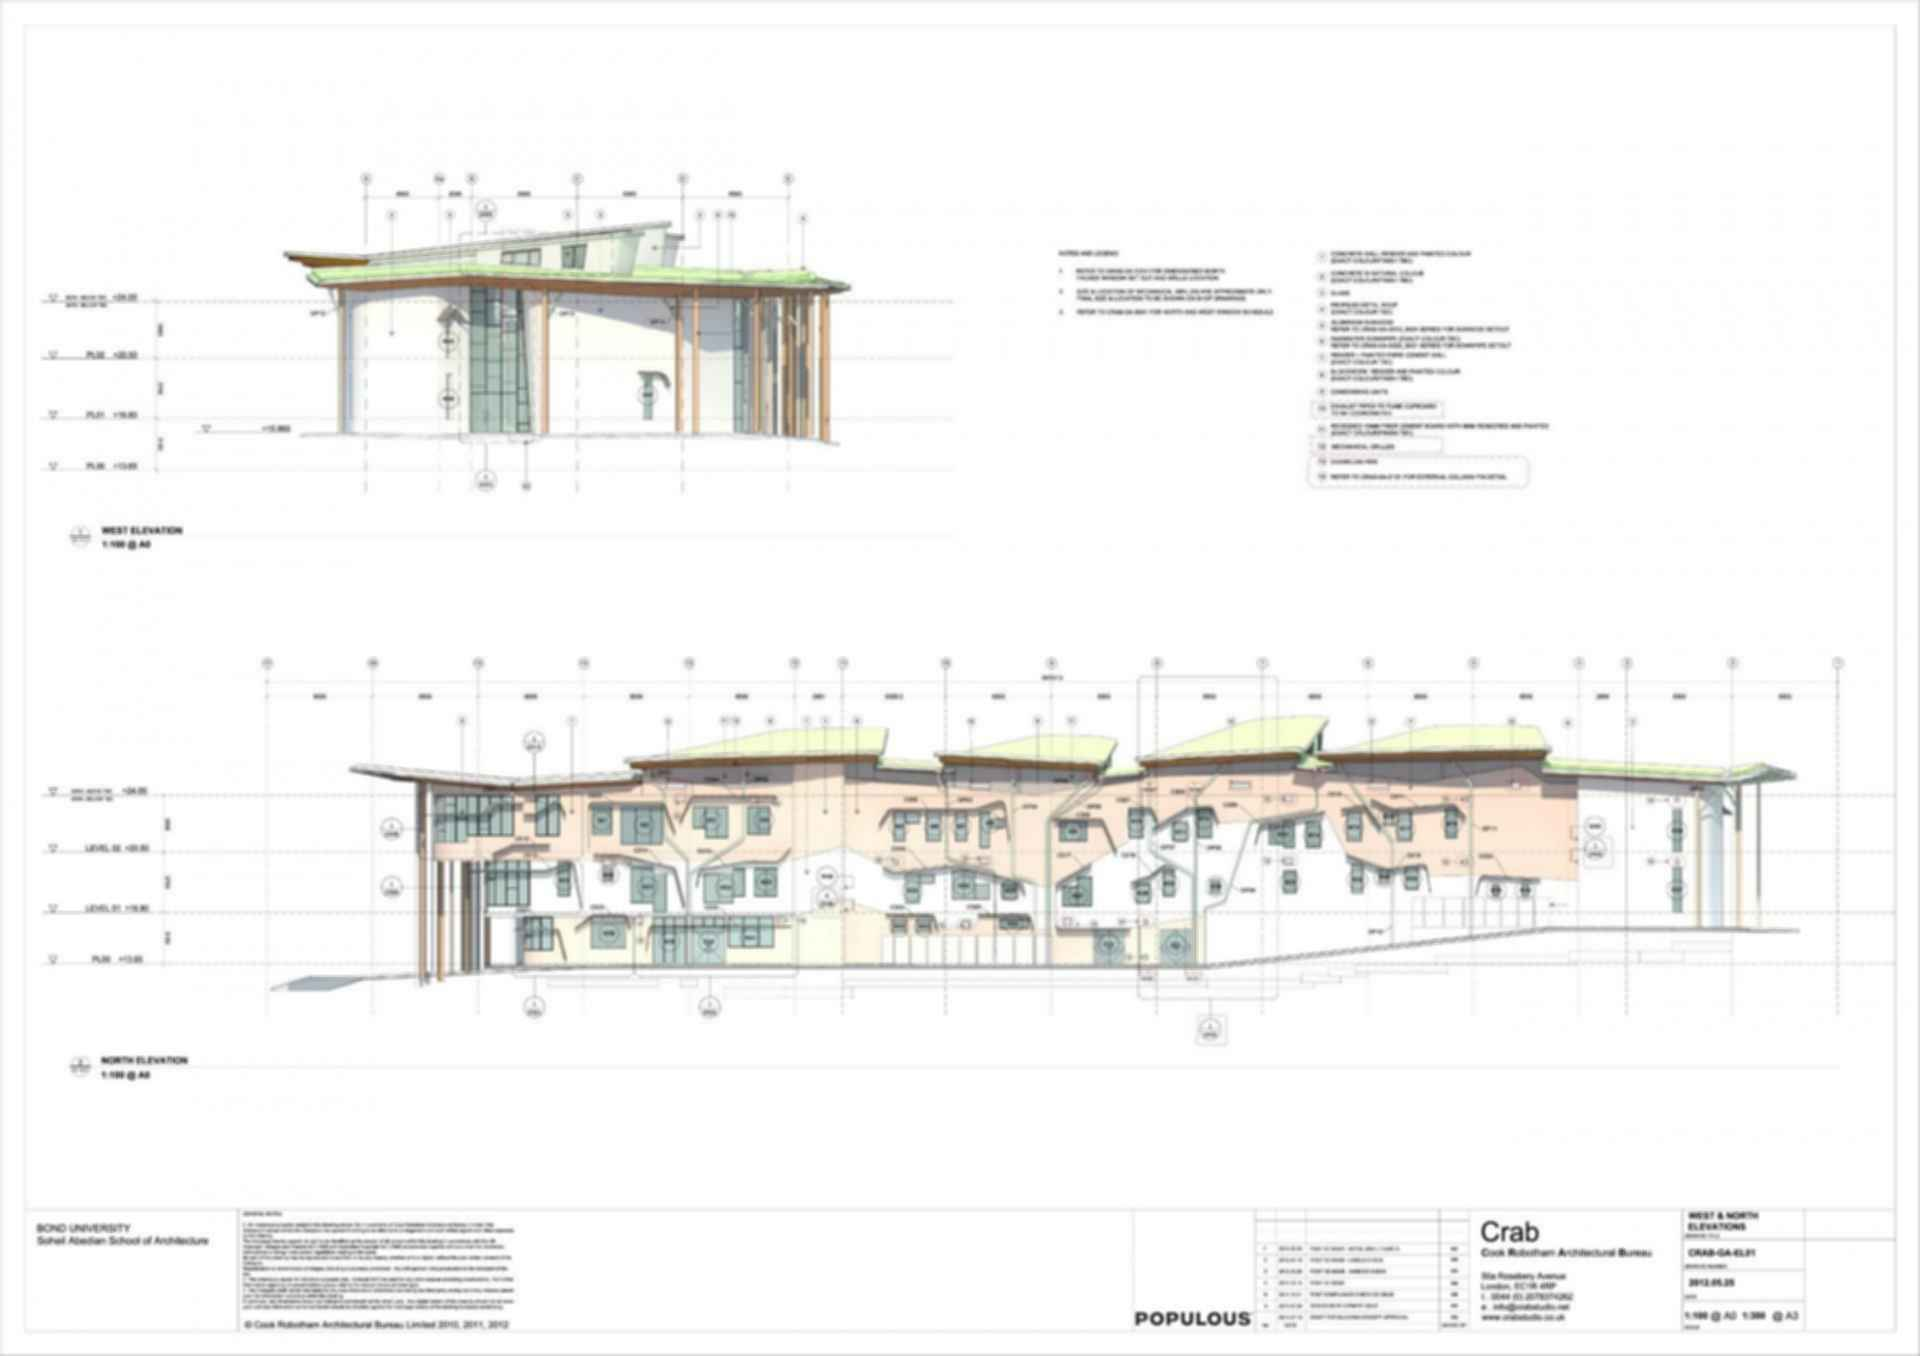 Abedian School of Architecture - Site plan